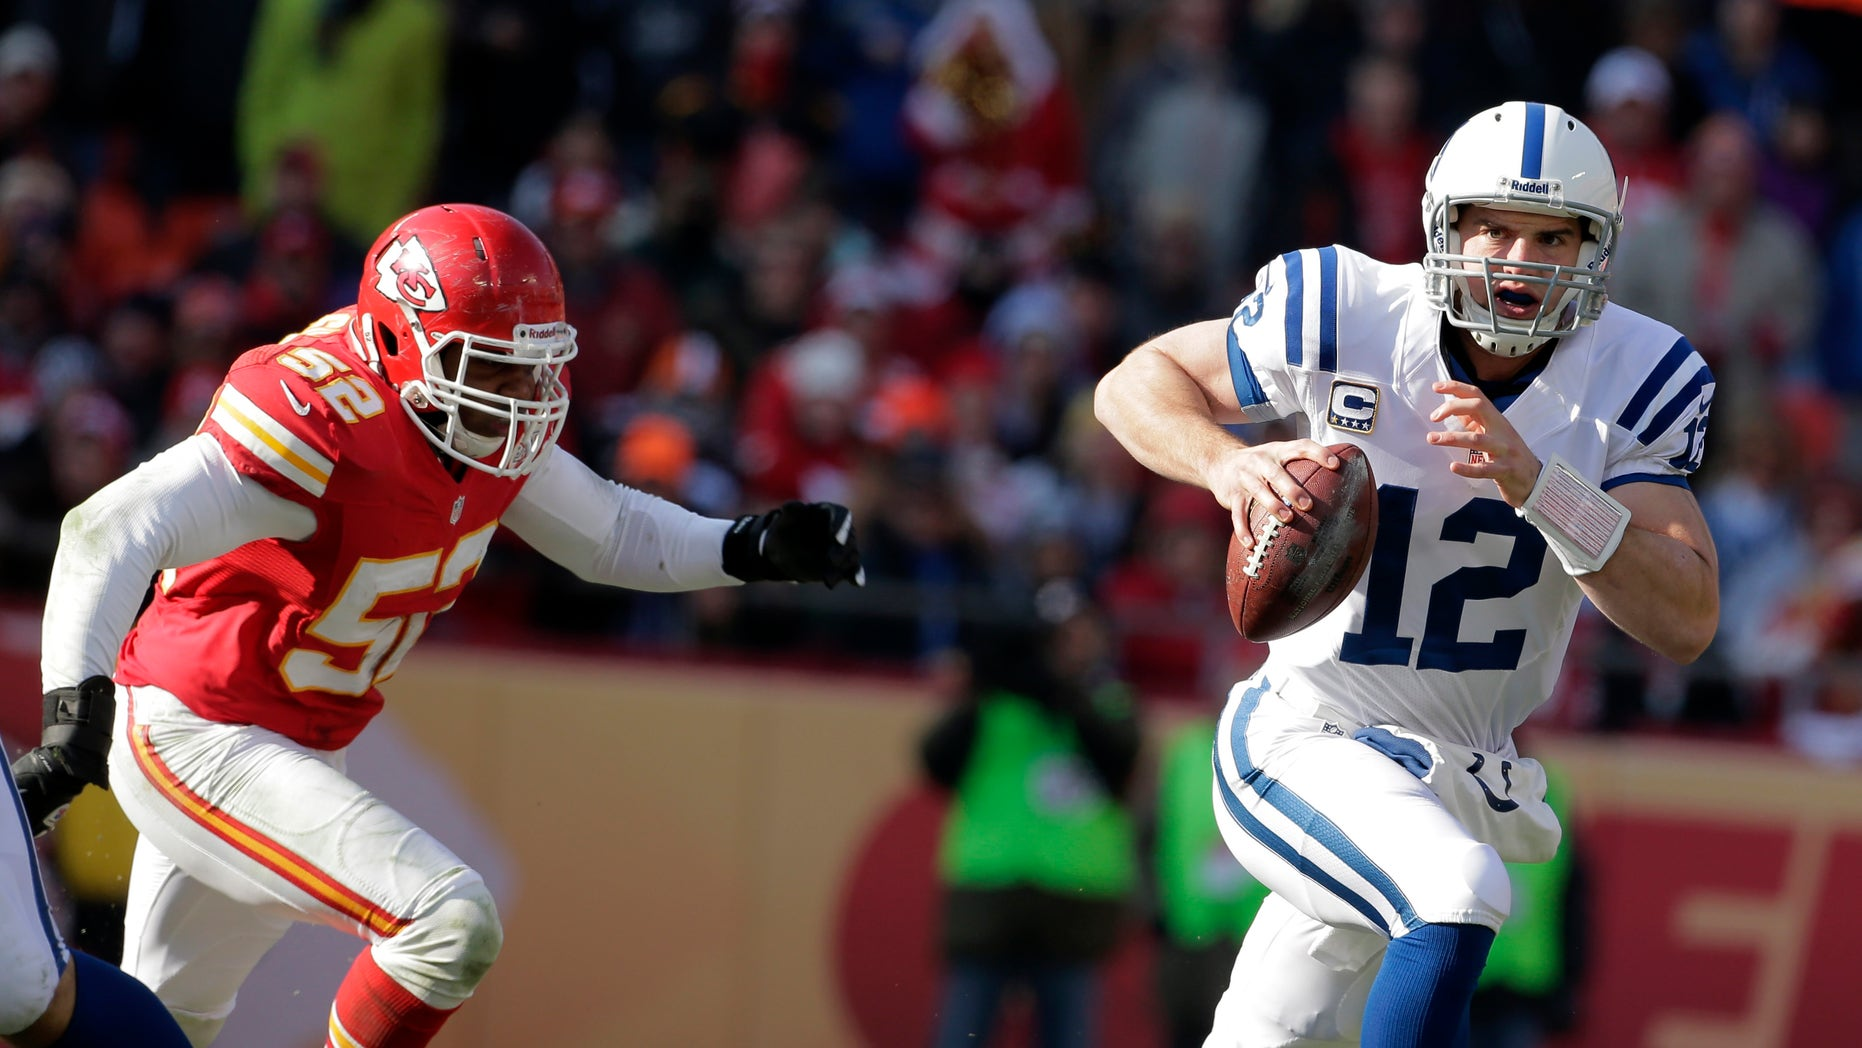 Indianapolis Colts quarterback Andrew Luck, right, scrambles away from Kansas City Chiefs inside linebacker Brandon Siler during the first half of an NFL football game on Sunday, Dec. 23, 2012, in Kansas City, Mo. (AP Photo/Charlie Riedel)